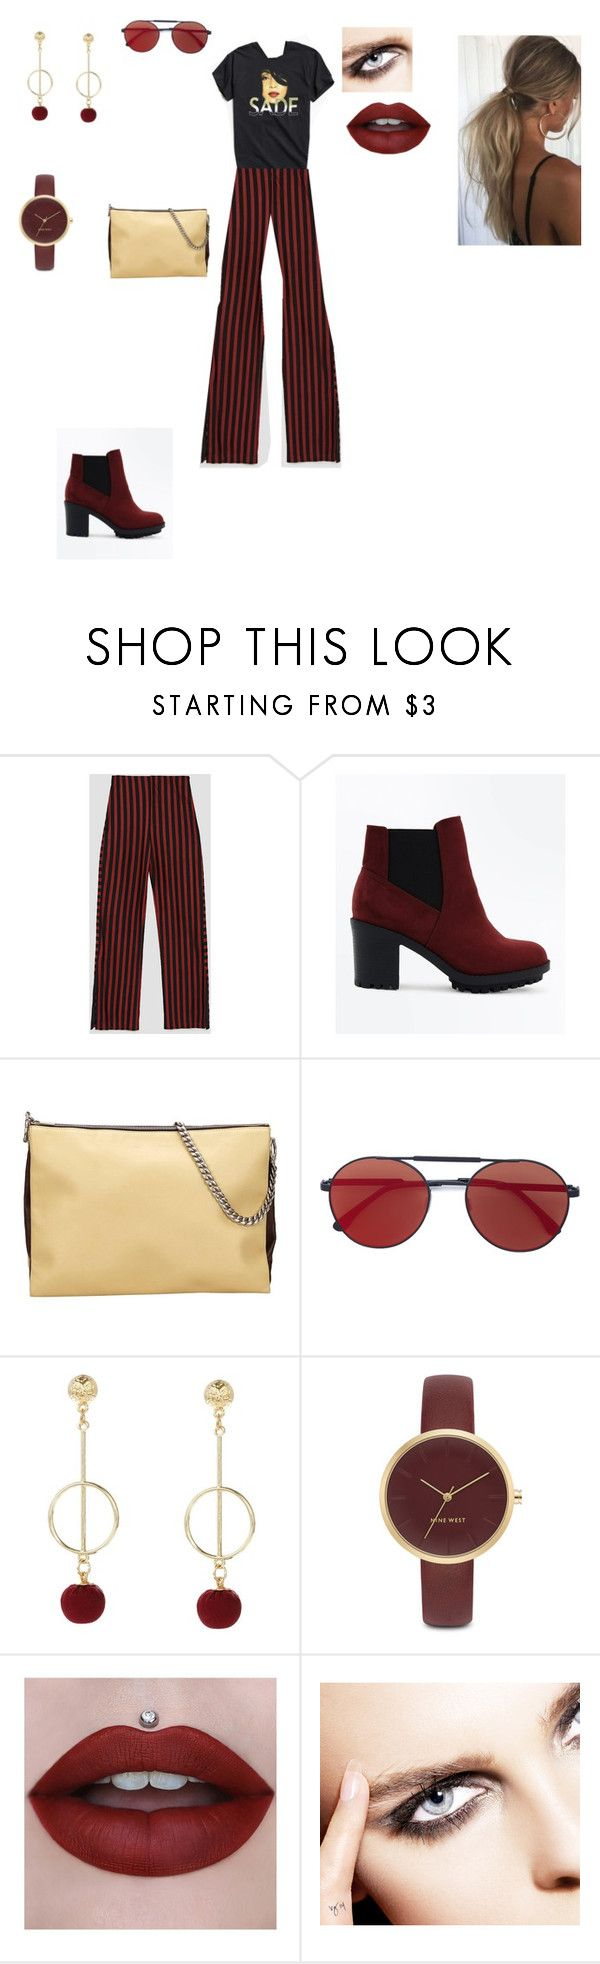 """chic outfit"" by helena94-1 on Polyvore featuring Urban Outfitters, New Look, CÉLINE, Vera Wang, Nine West and polyvorefashion"